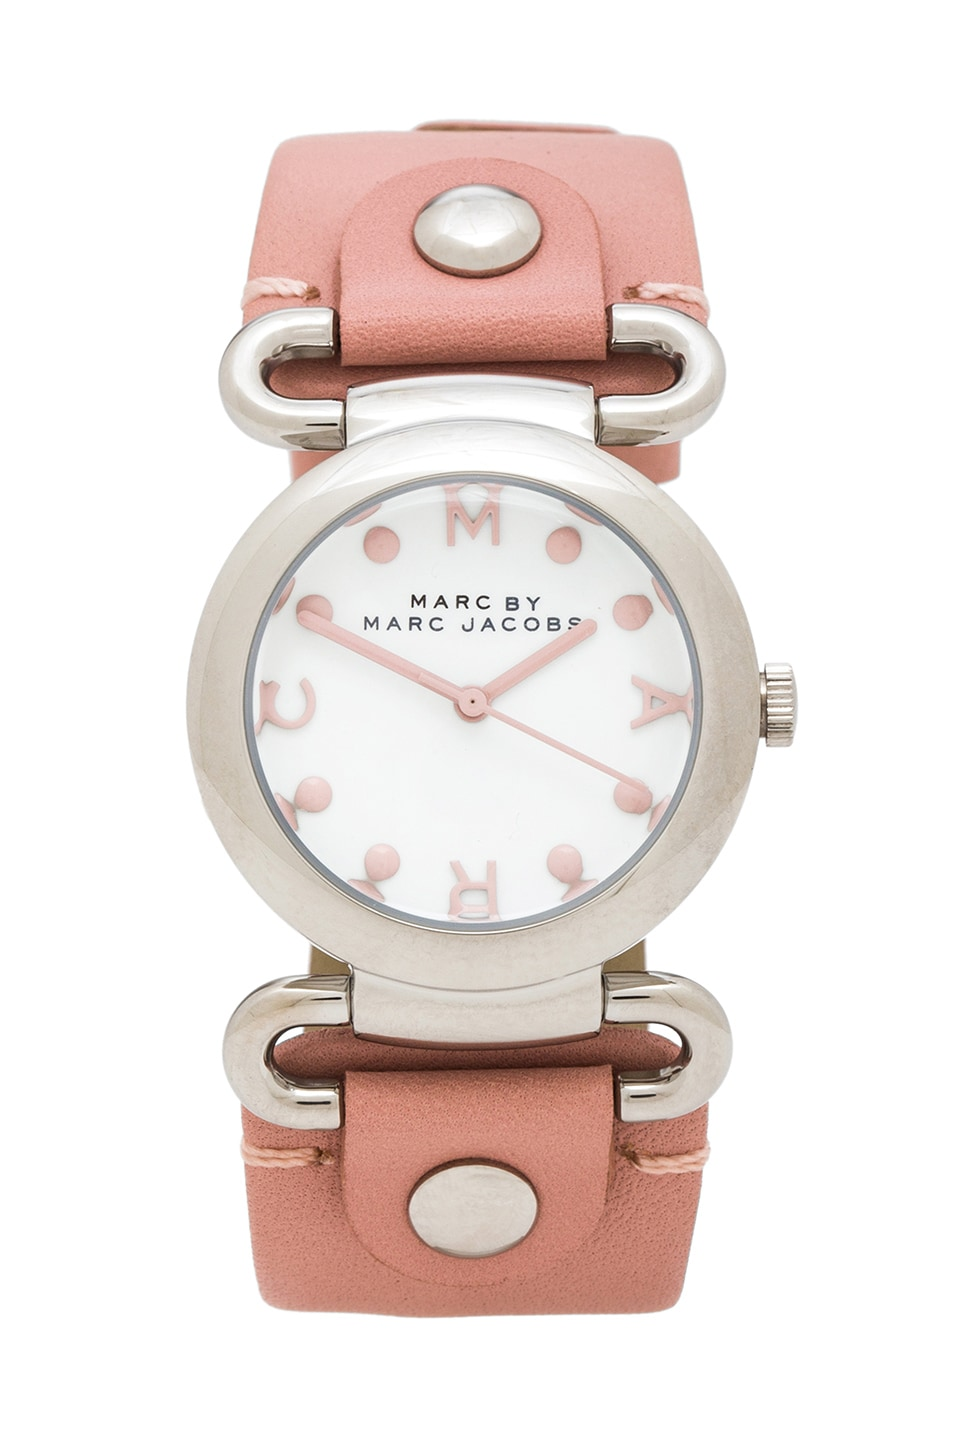 Marc by Marc Jacobs Molly Watch in Stainless Steel & Hazy Rose